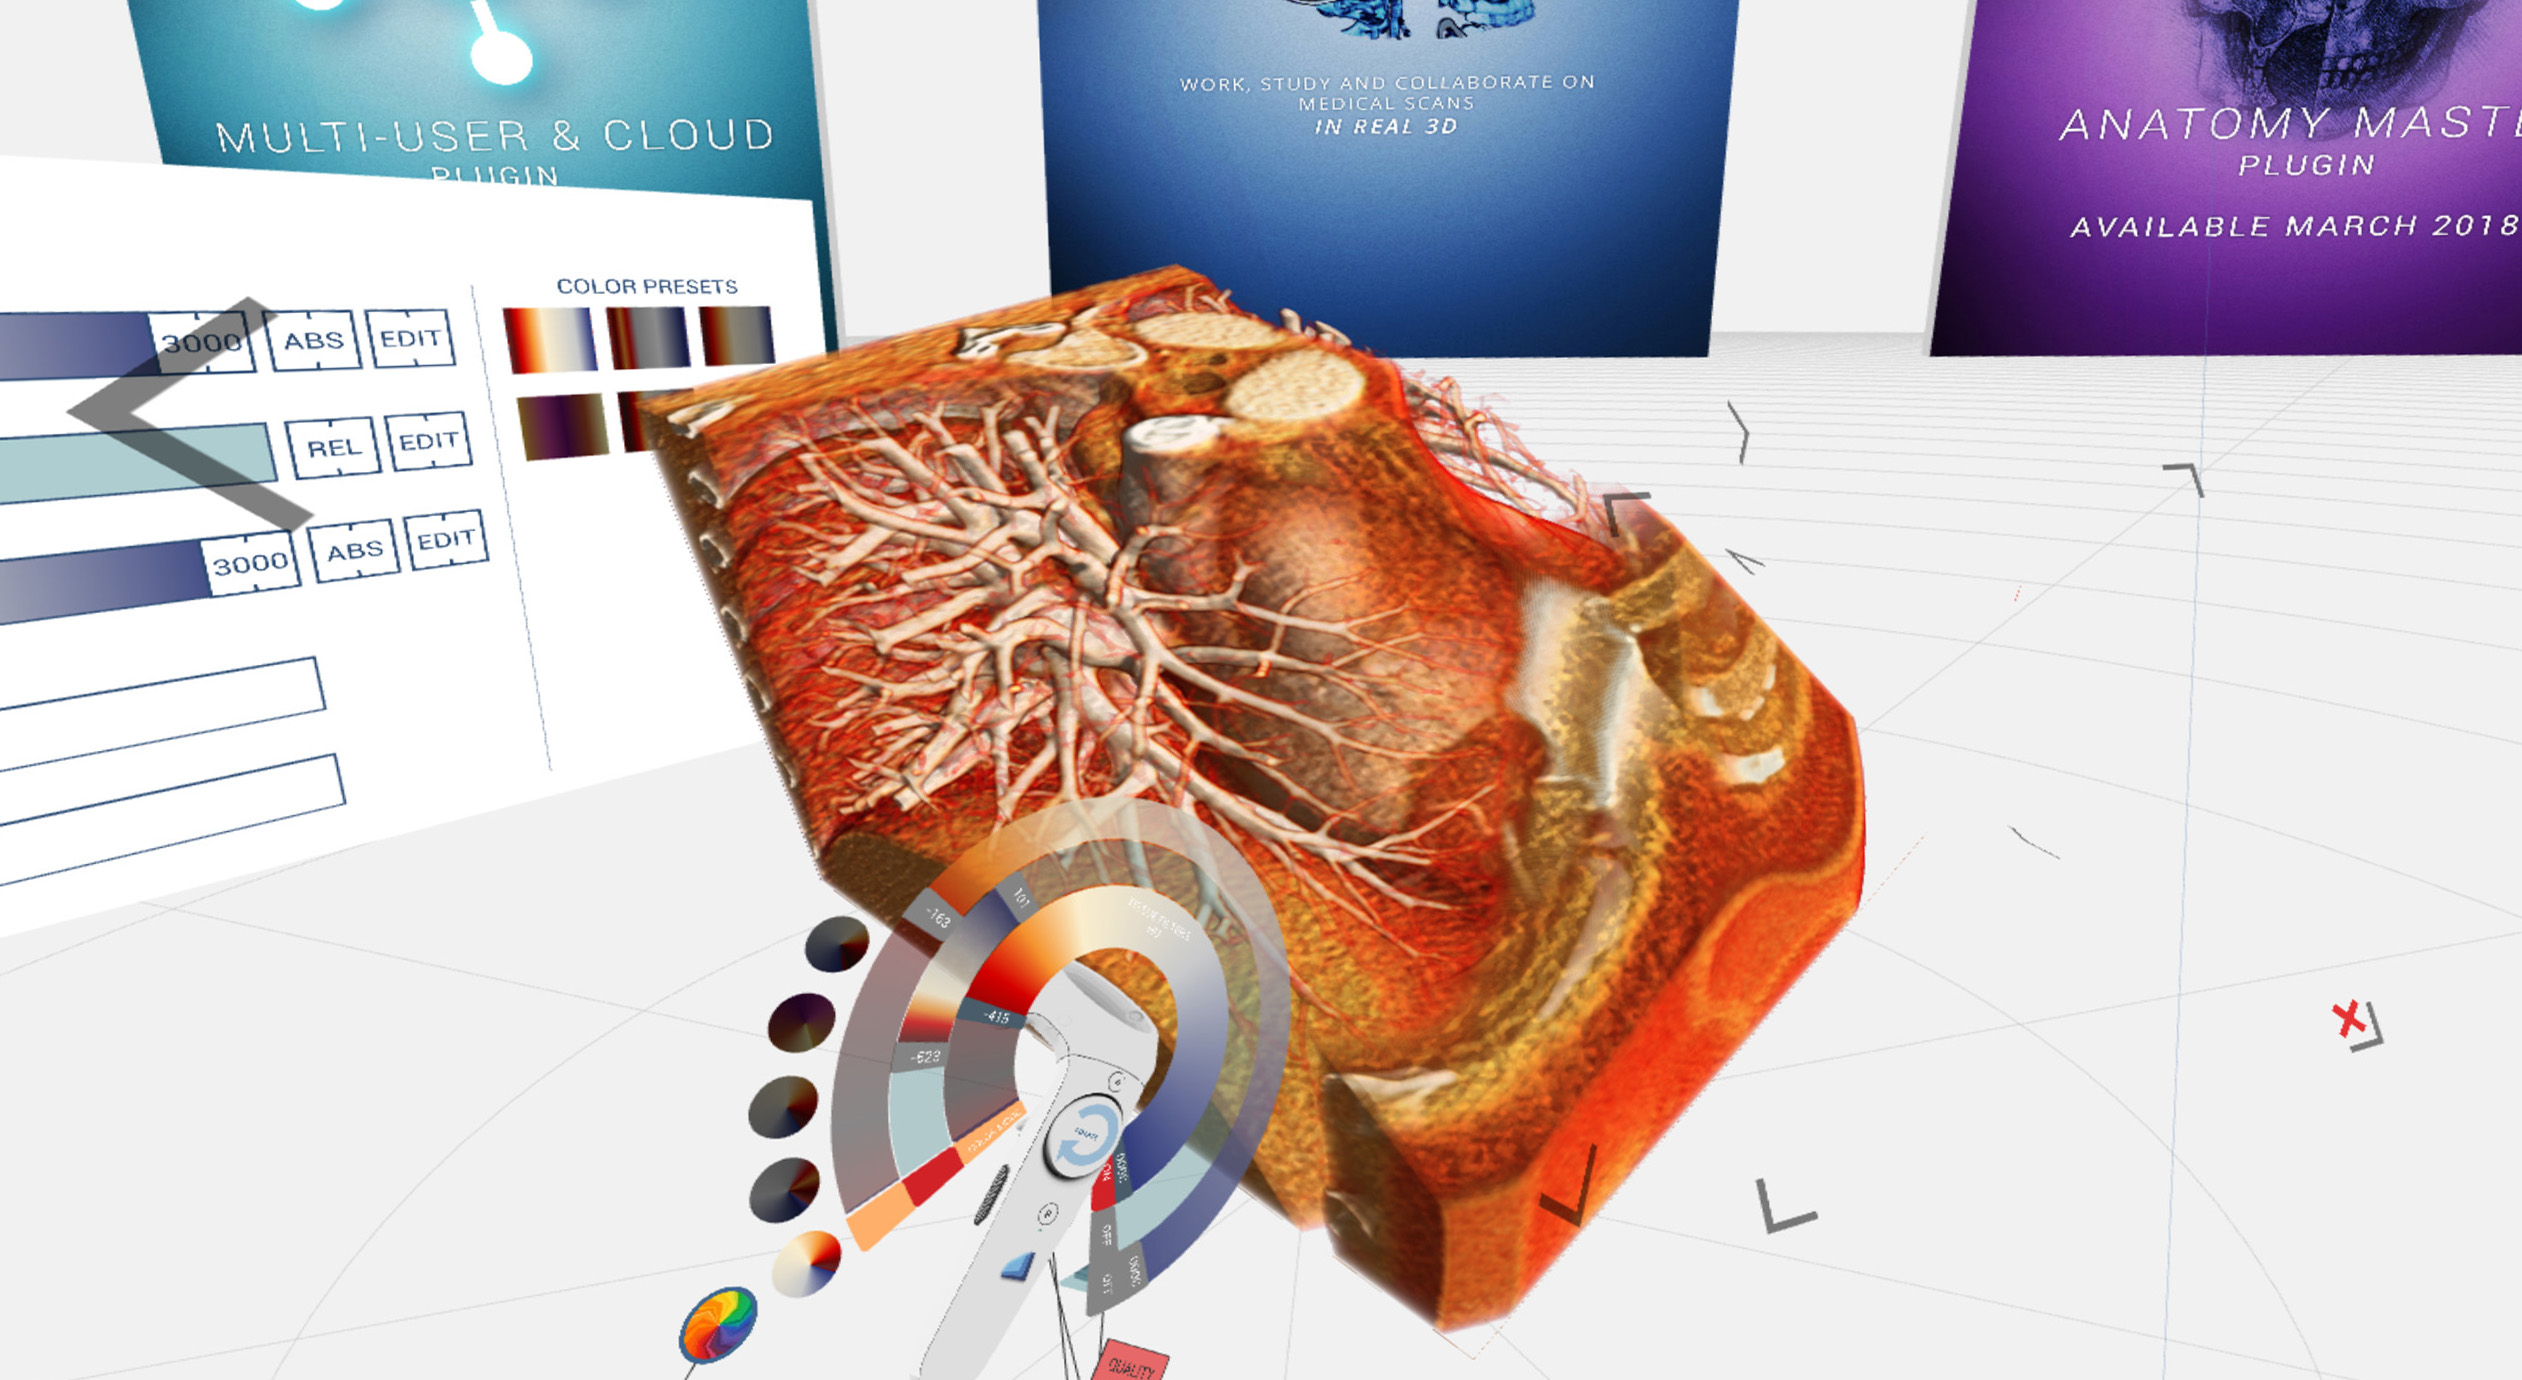 Medicalholodeck Free The Real Human Anatomy Steam Discovery